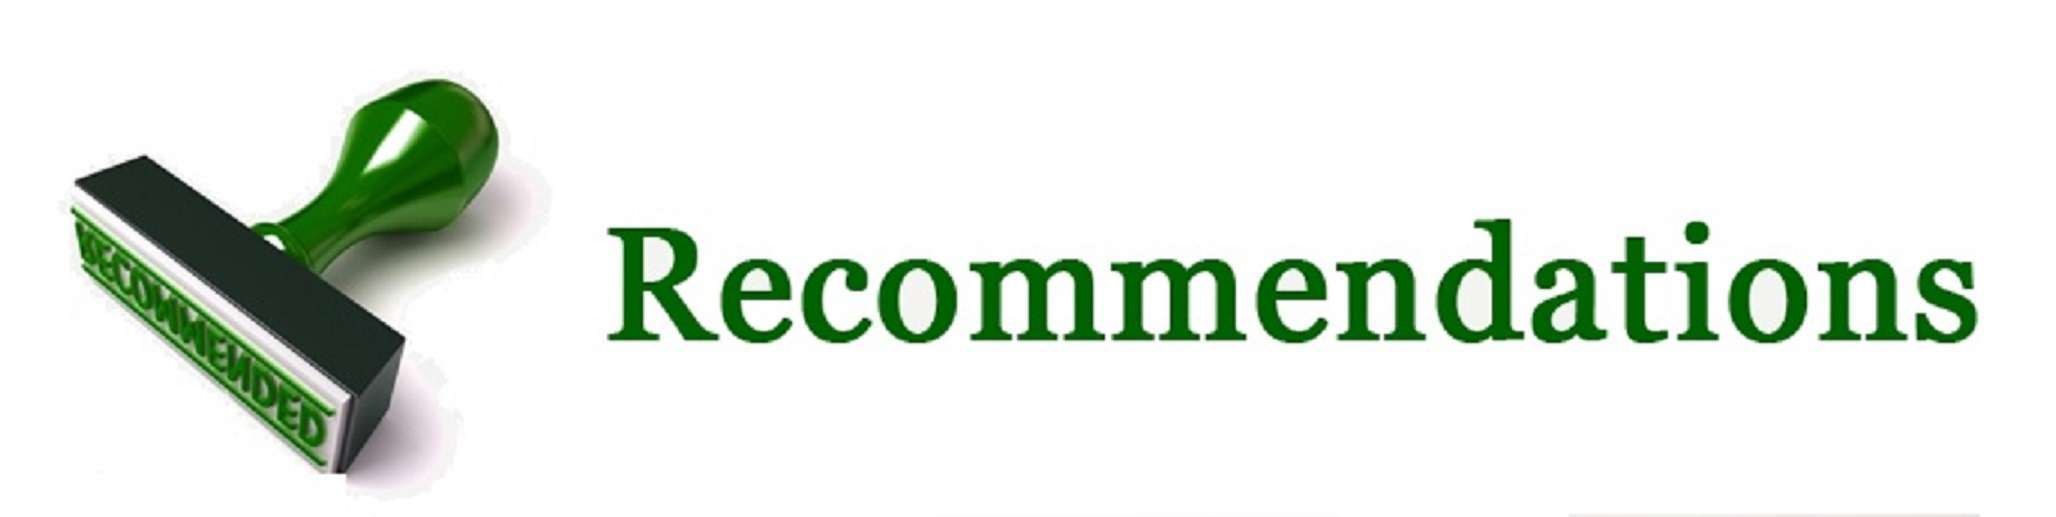 3 recommend